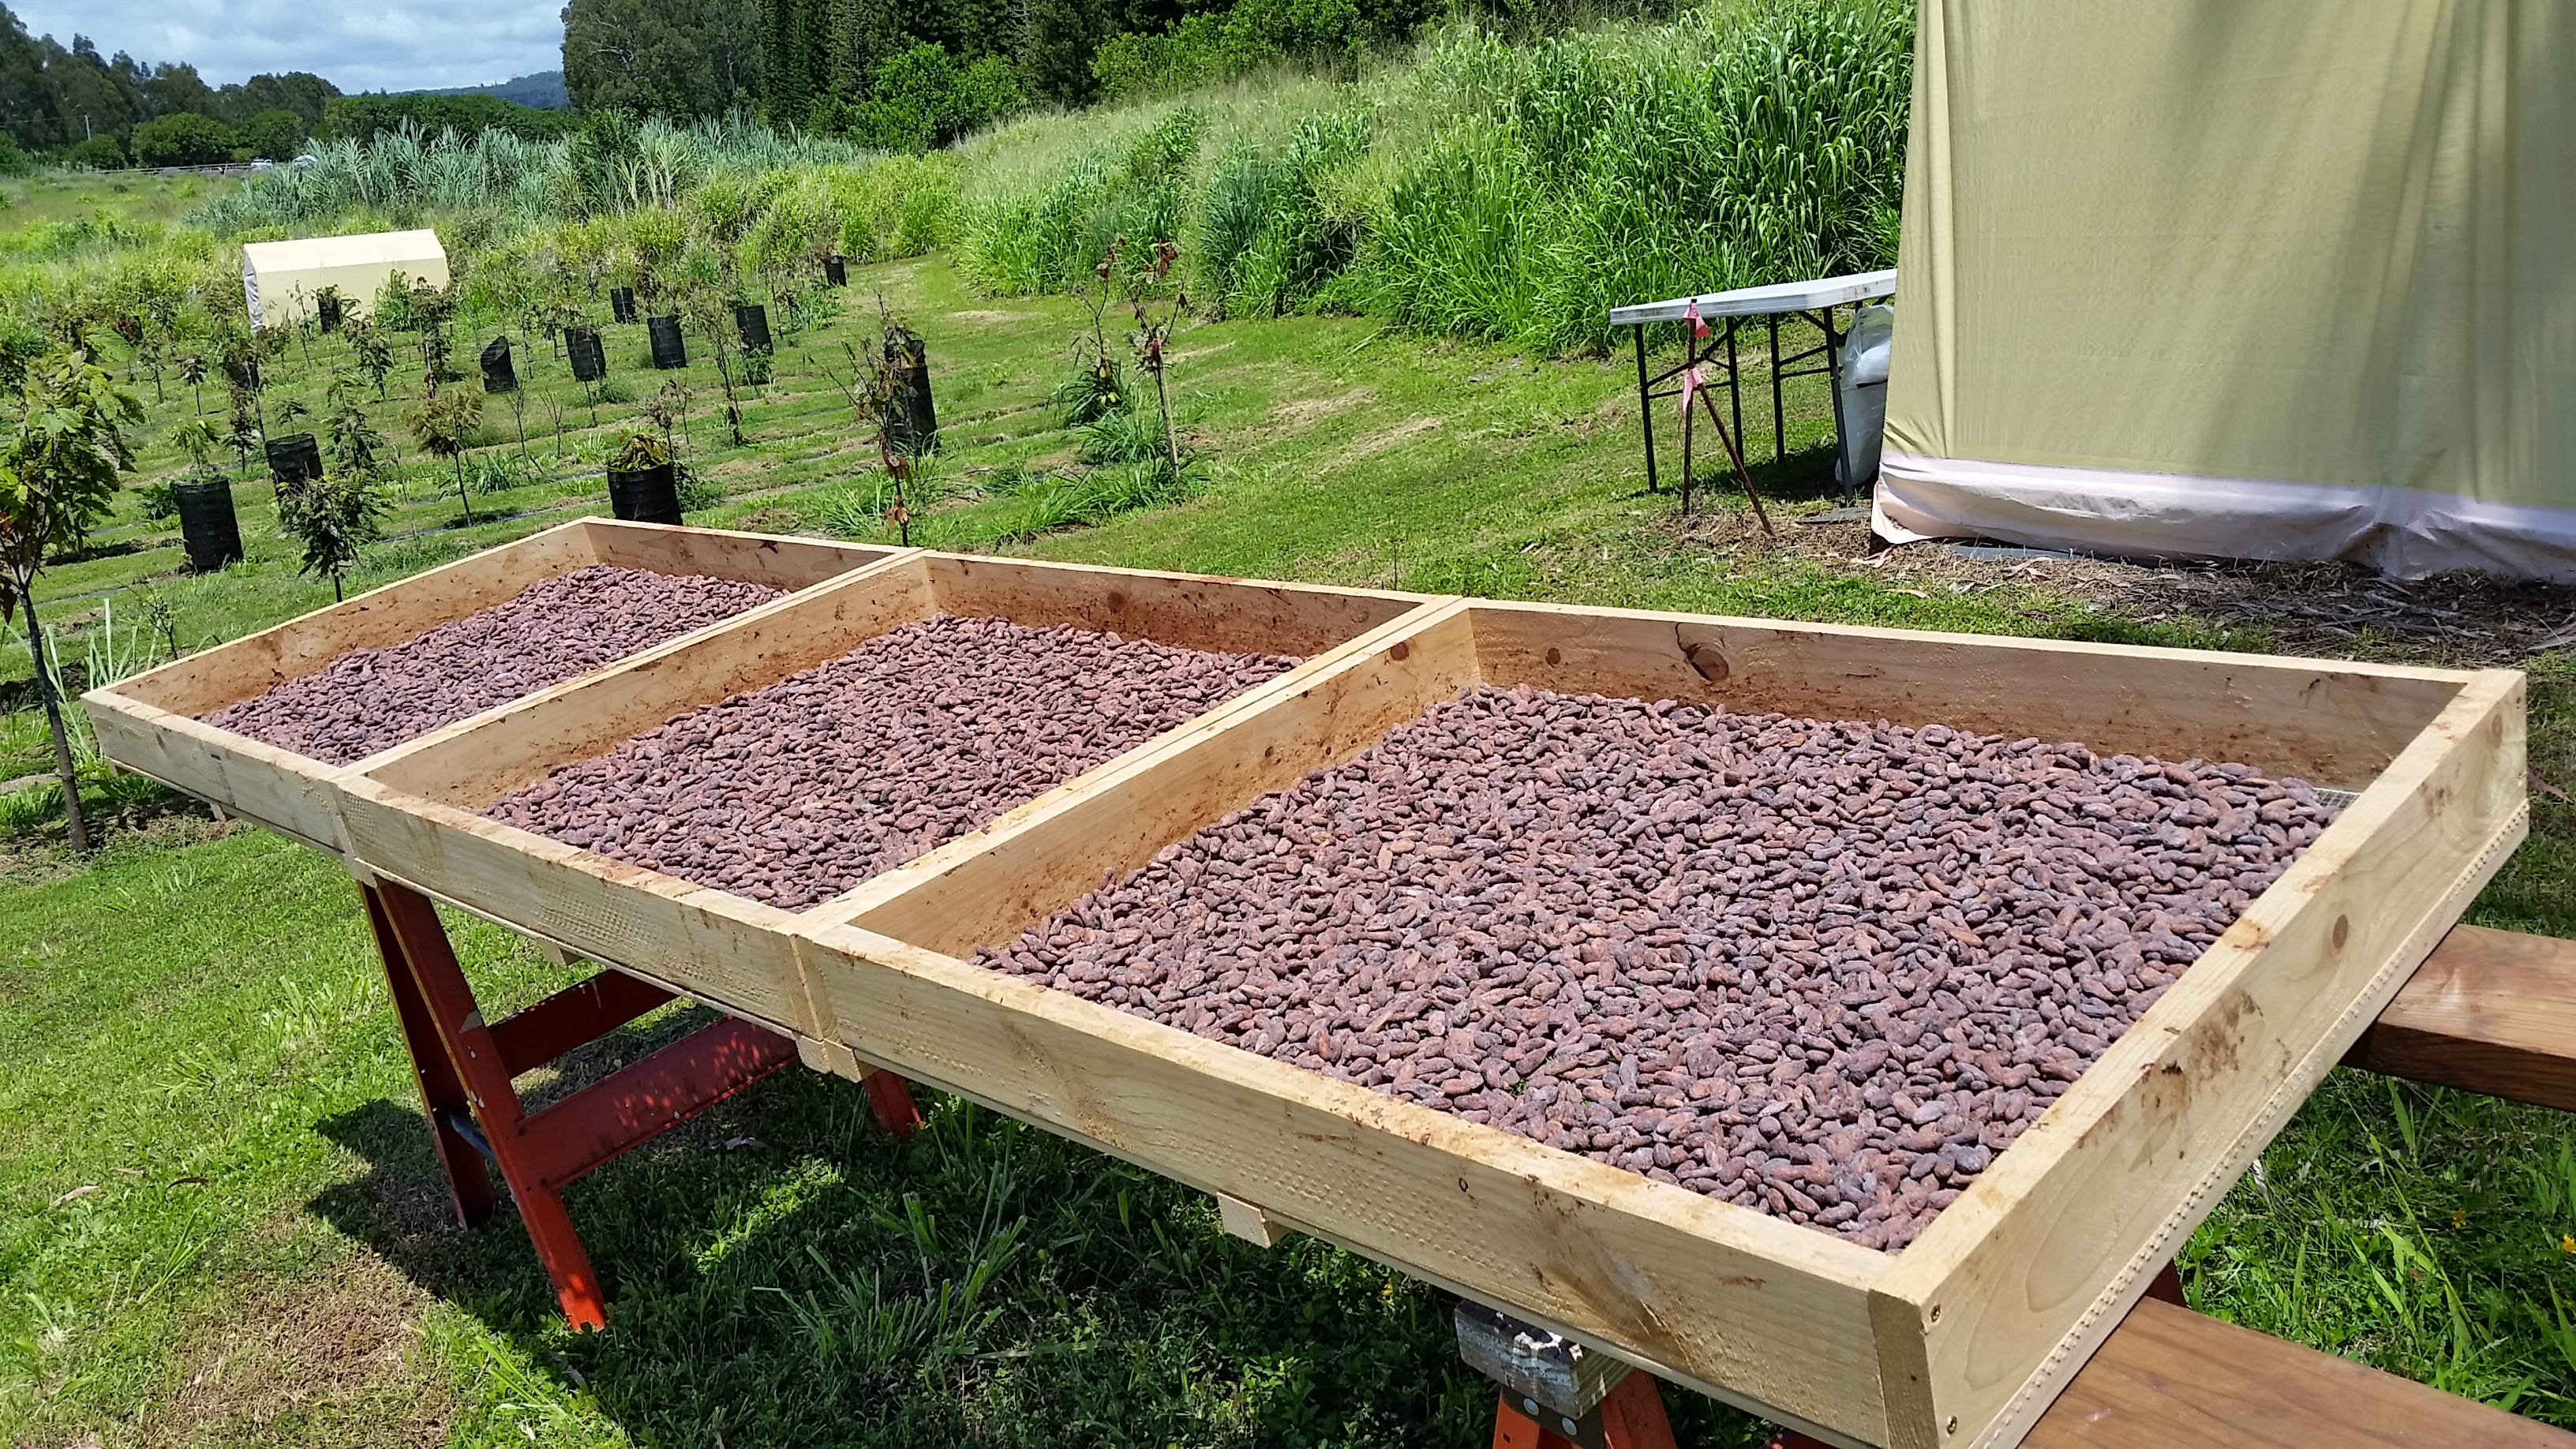 Mauna Kea Cacao beans drying in the sun.